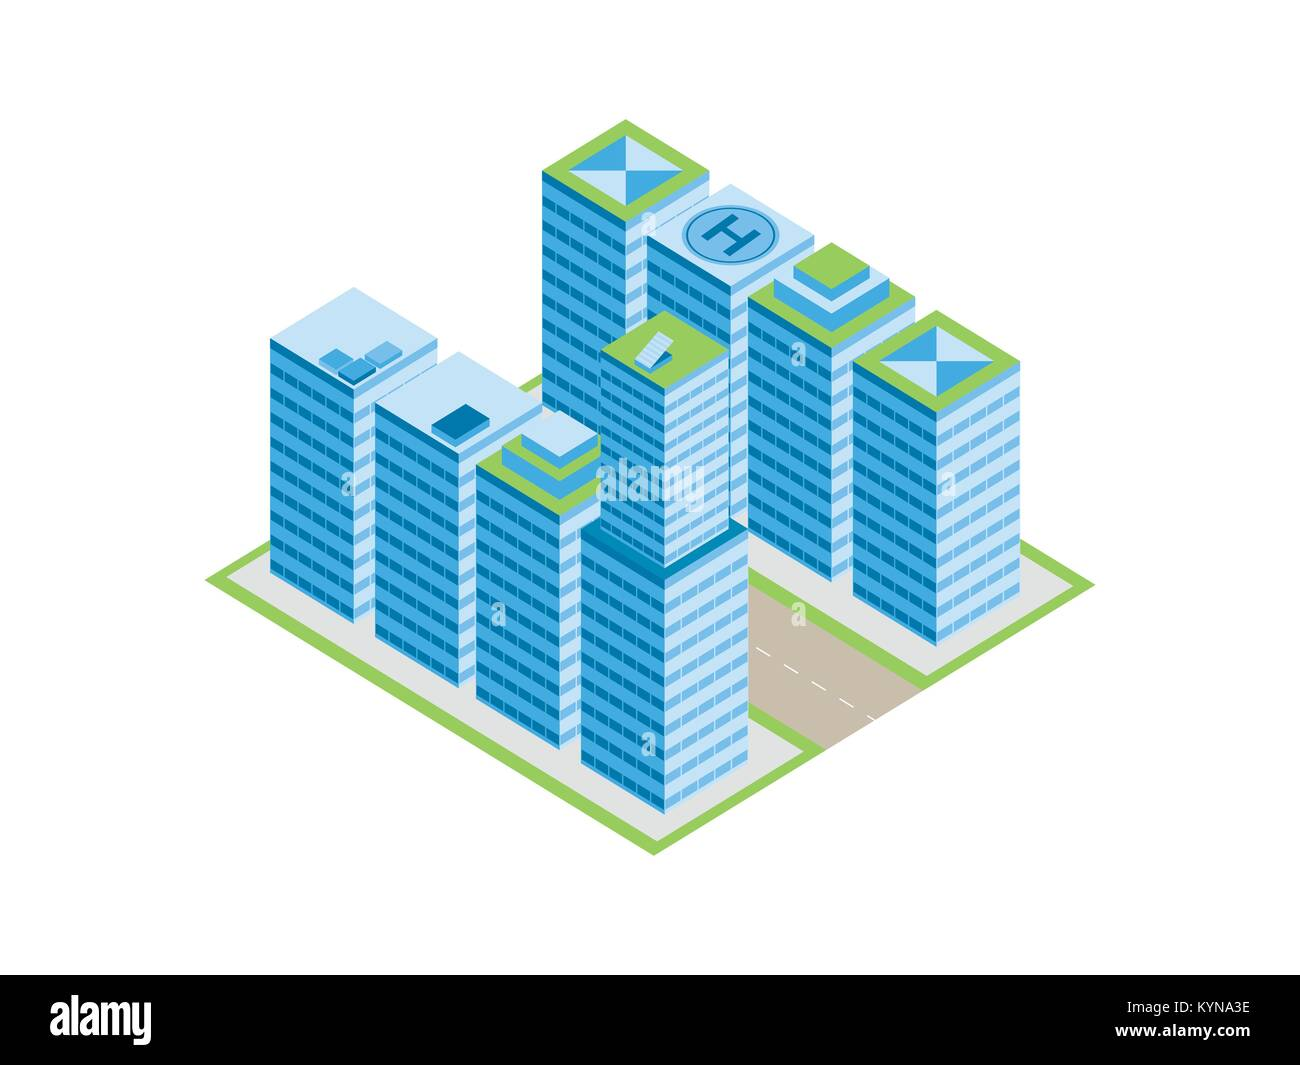 Isometric city, street with houses and skyscrapers. Isolated on white background. Vector illustration Stock Vector